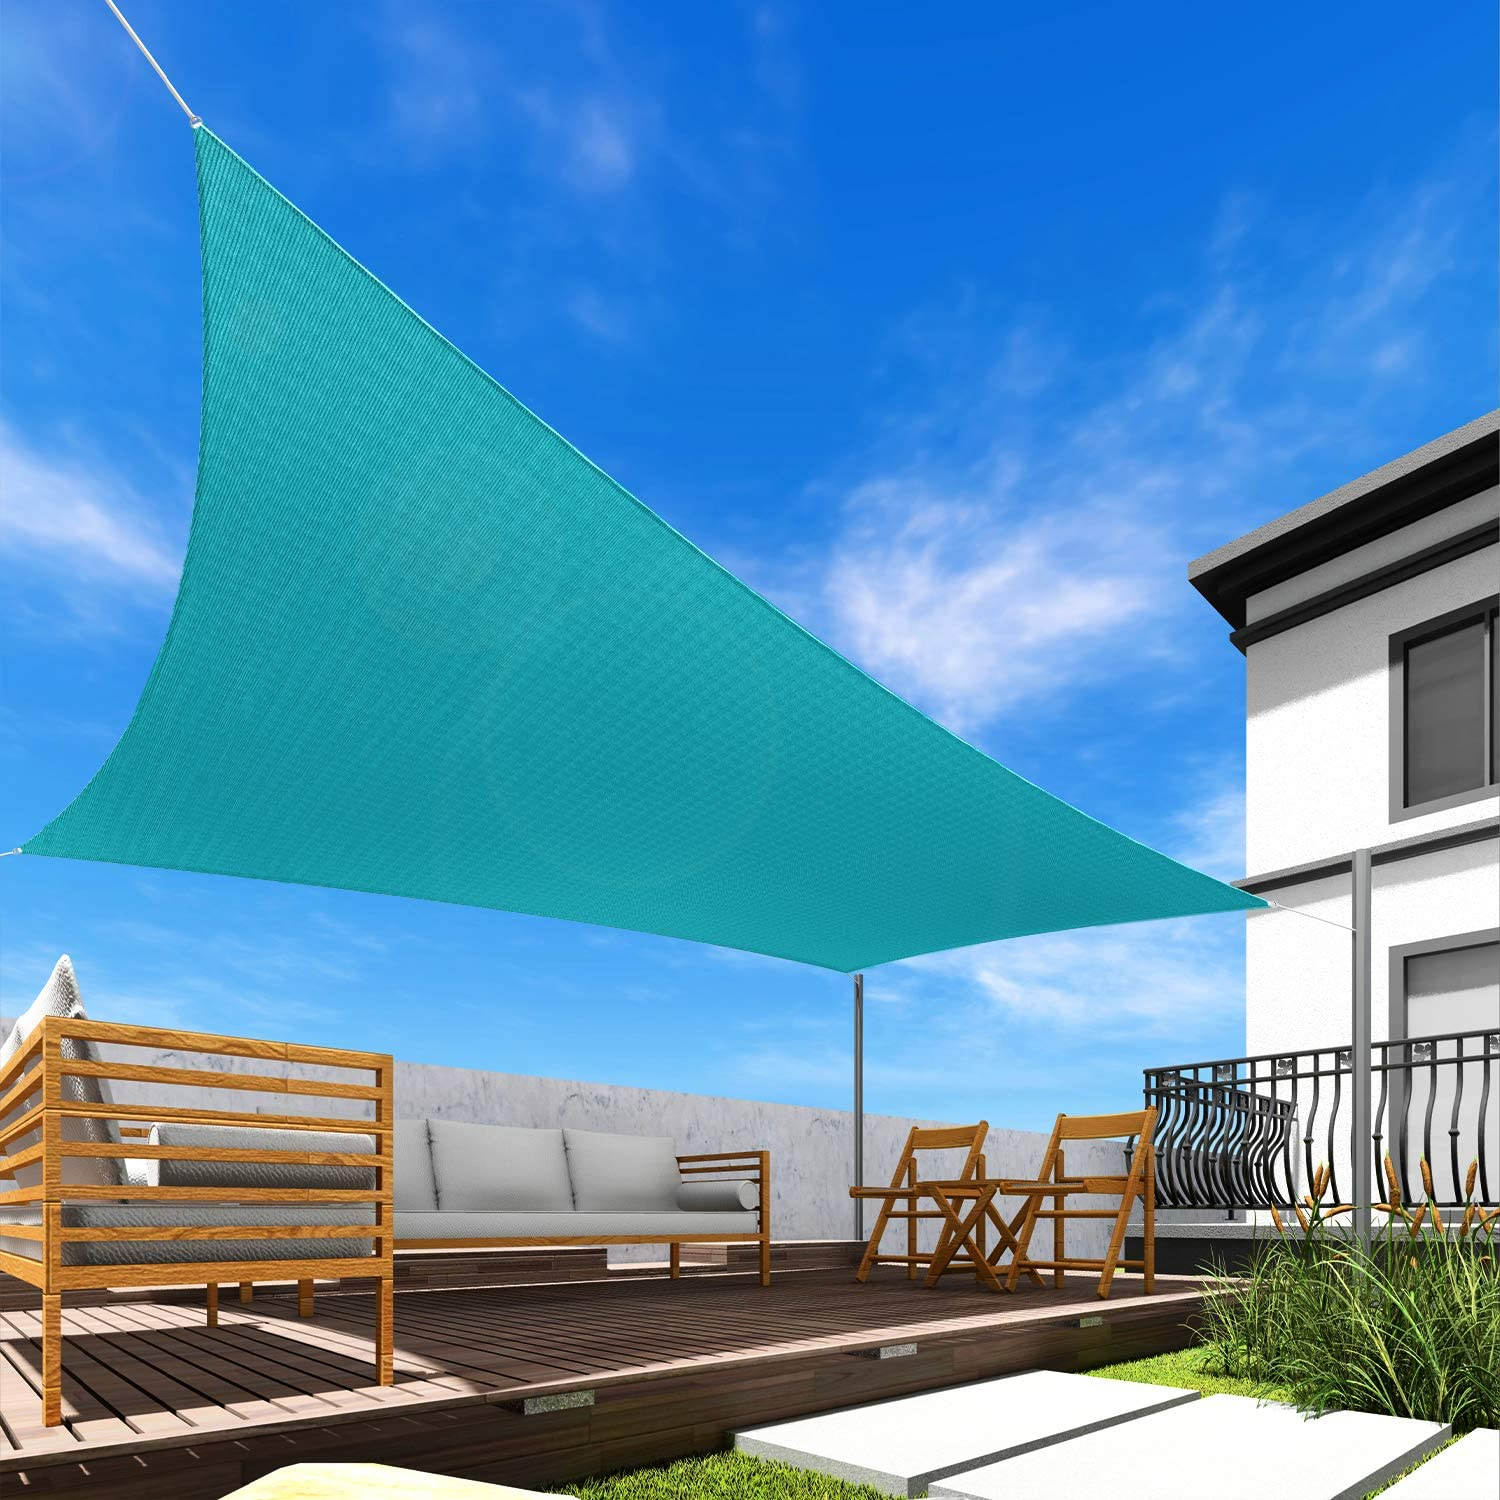 Windscreen4less 16' x 16' Sun Shade Sail Square Canopy in Turquoise with Commercial Grade Customized